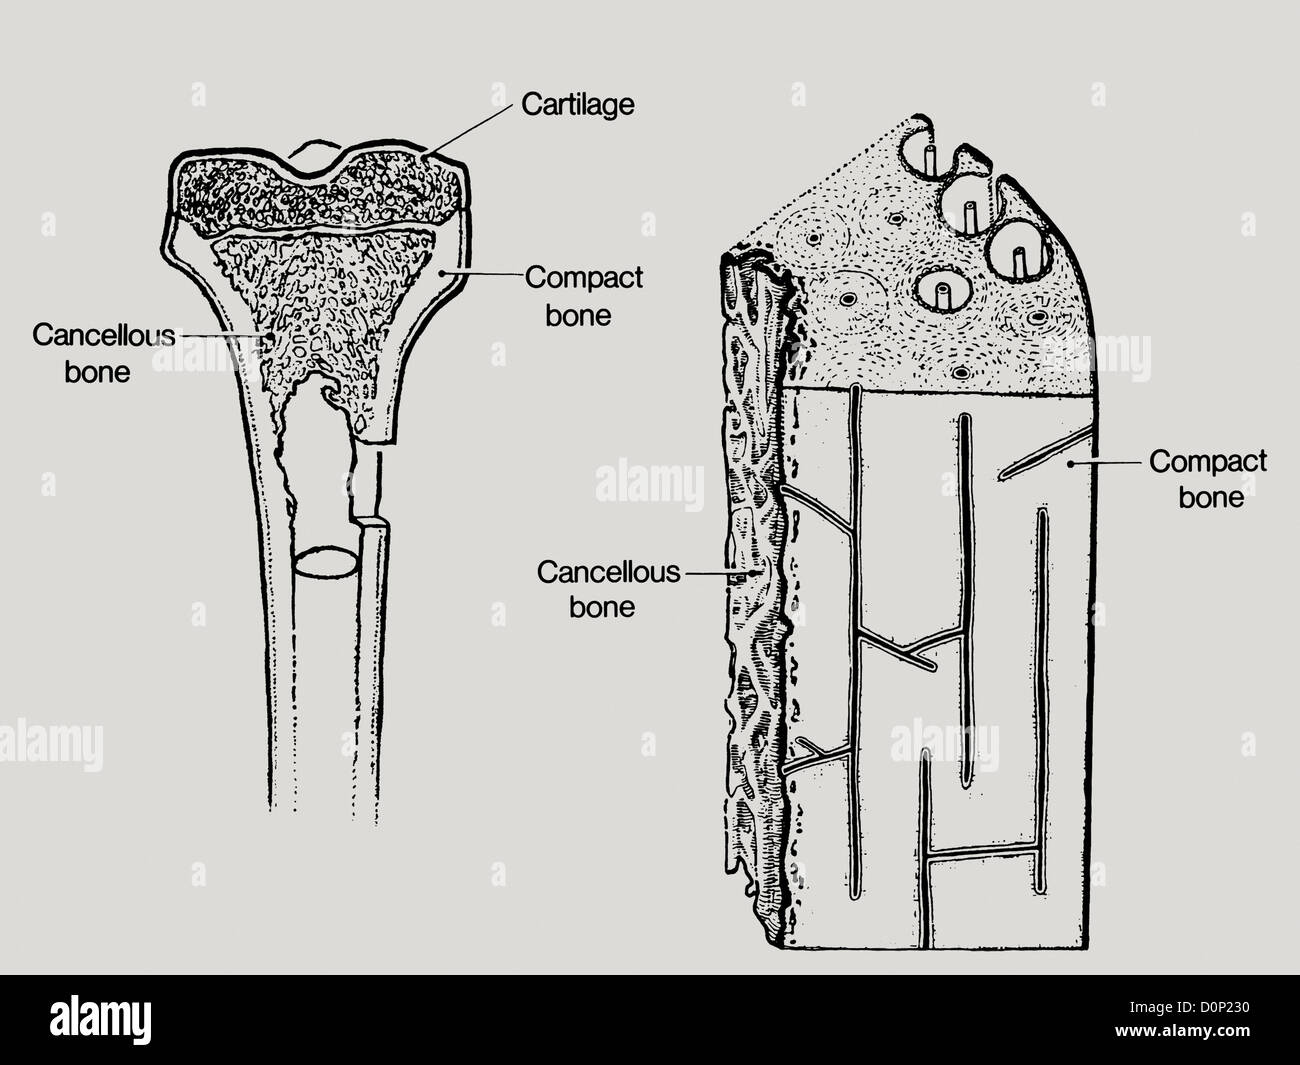 hight resolution of a line drawing showing the structure in bone including cancellous or spongy bone